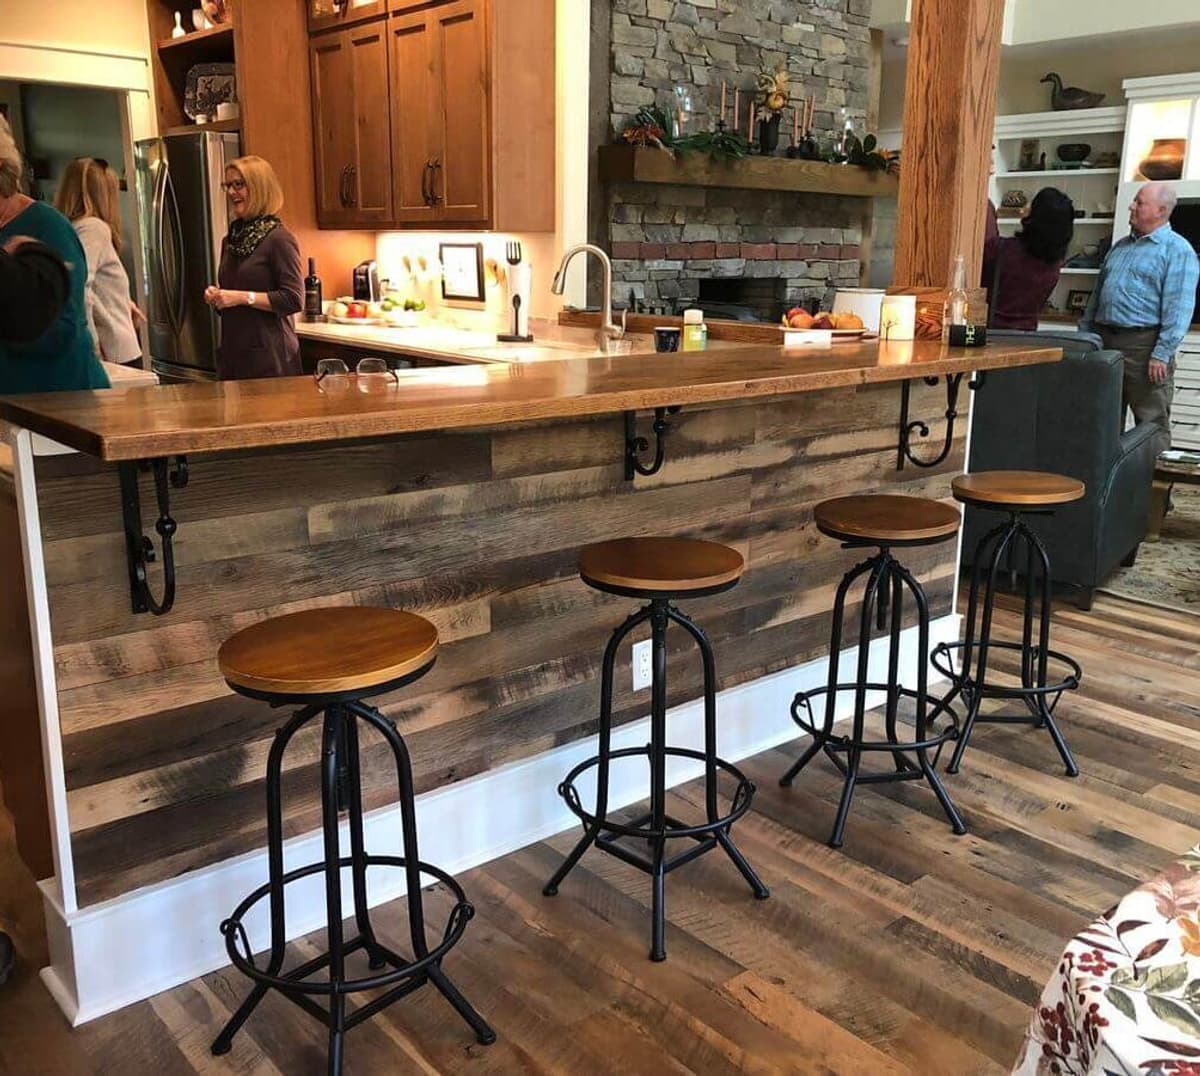 Reclaimed wood bar top in home kitchen.